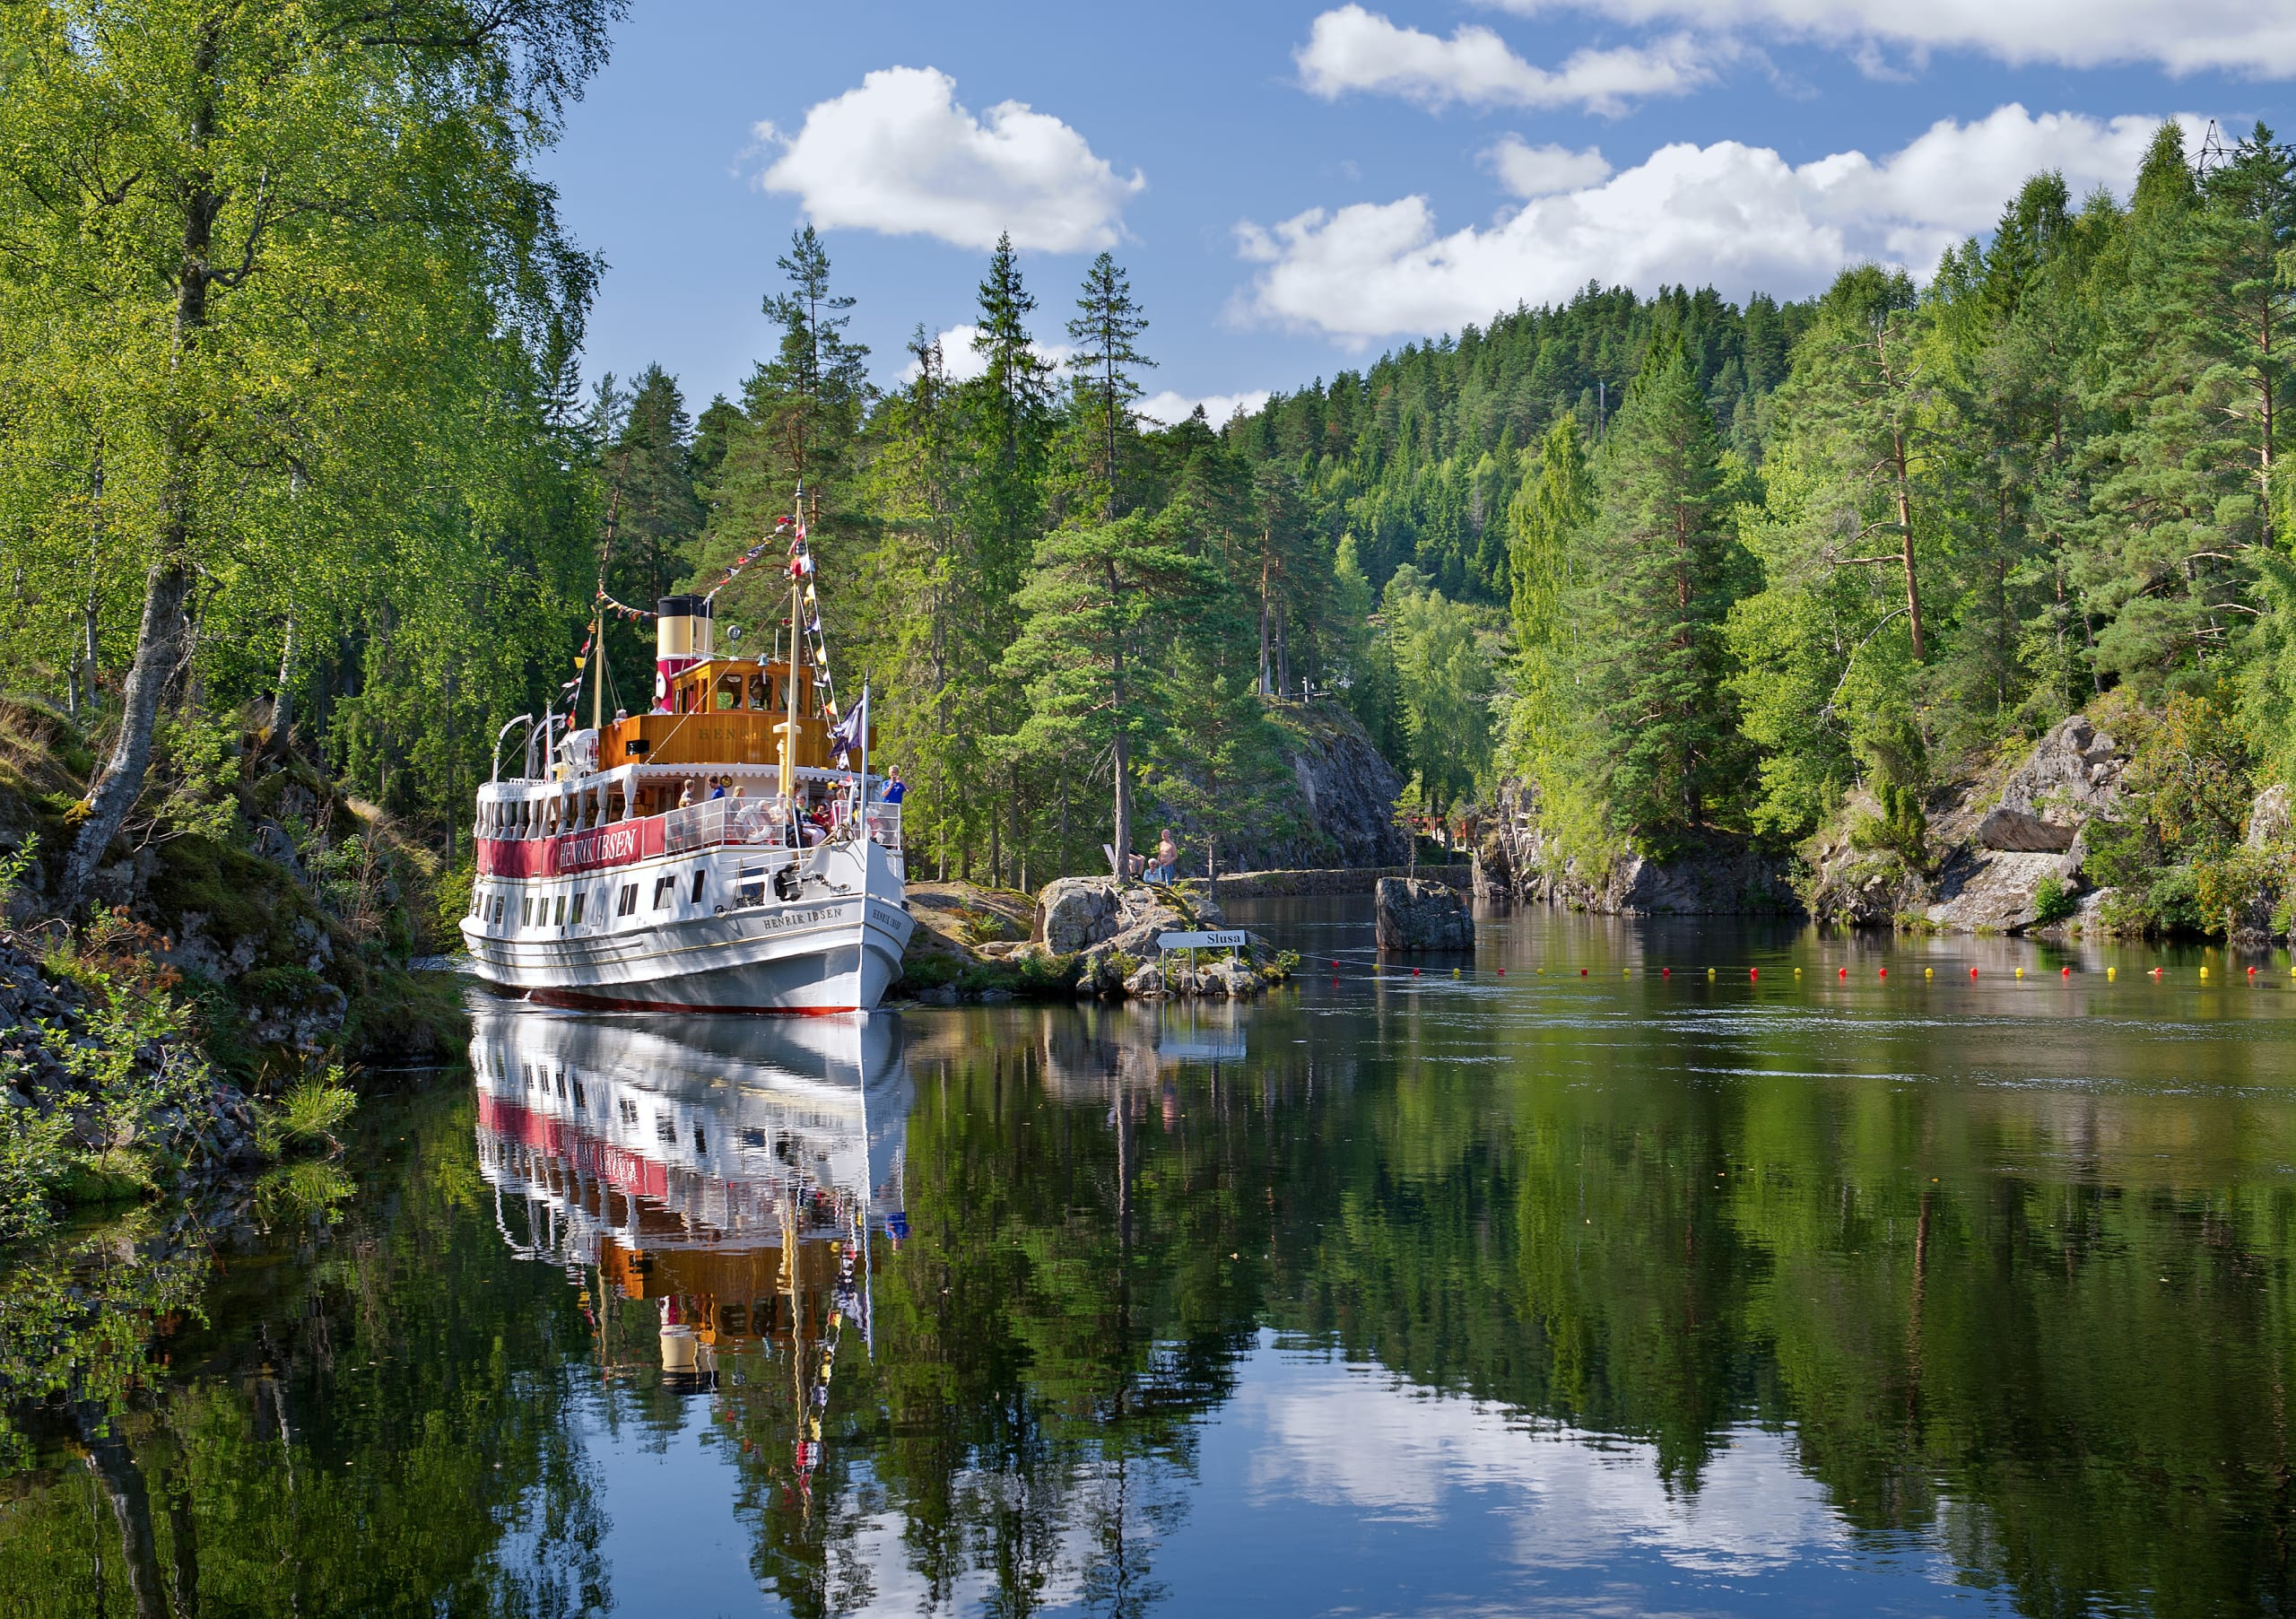 M/S Henrik Ibsen sailing in the Telemark Canal